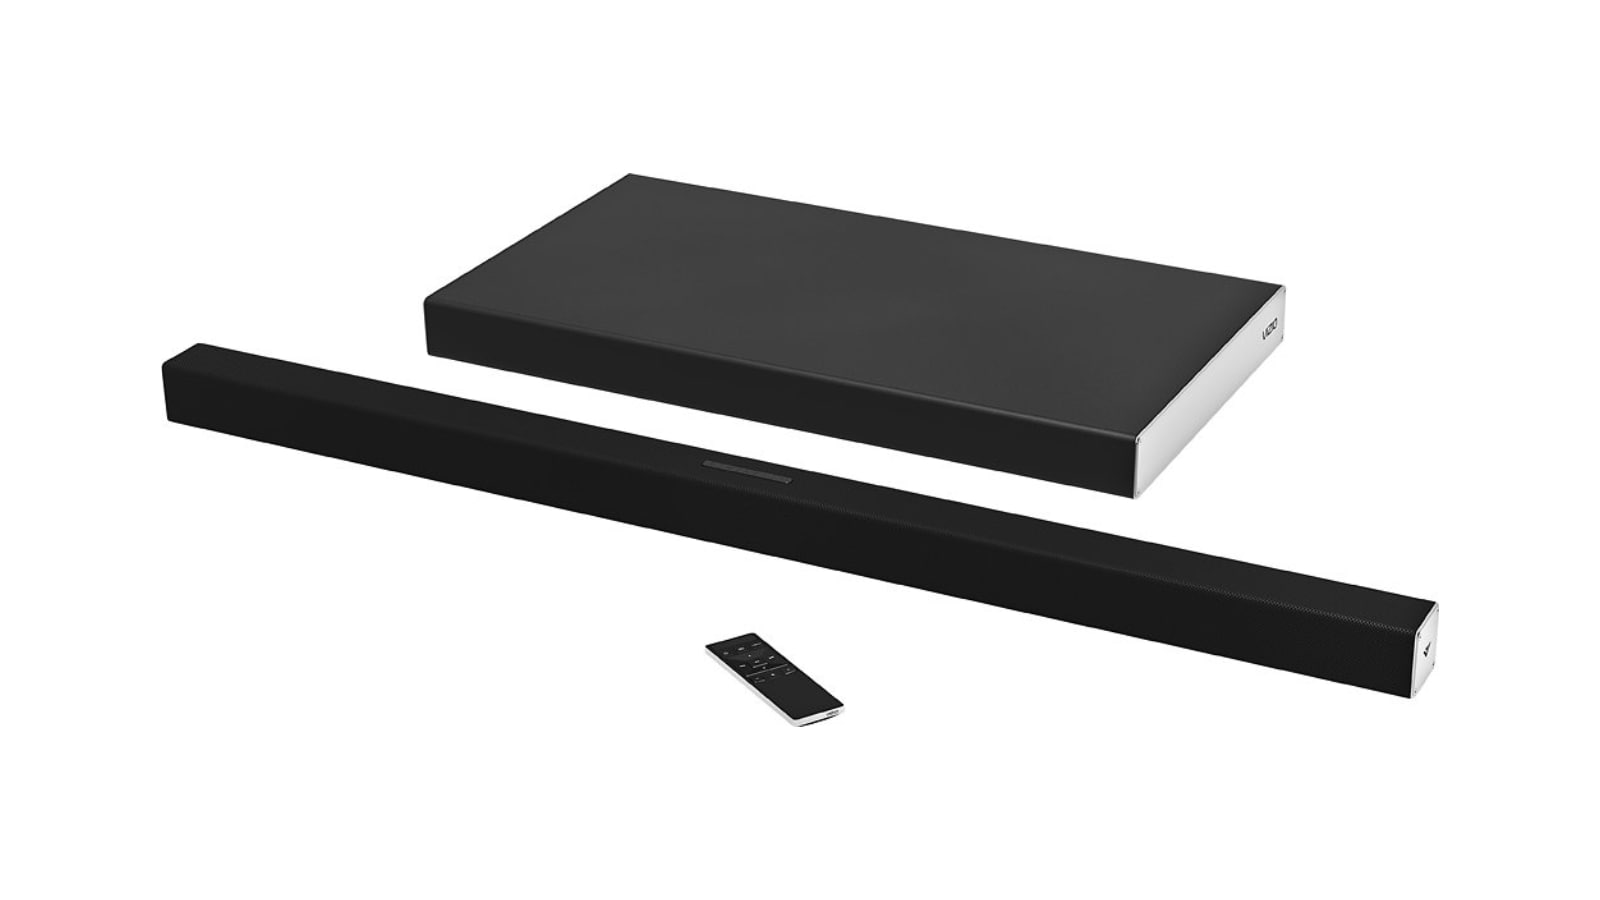 Score this Vizio soundbar and subwoofer with built-in Chromecast and save $120